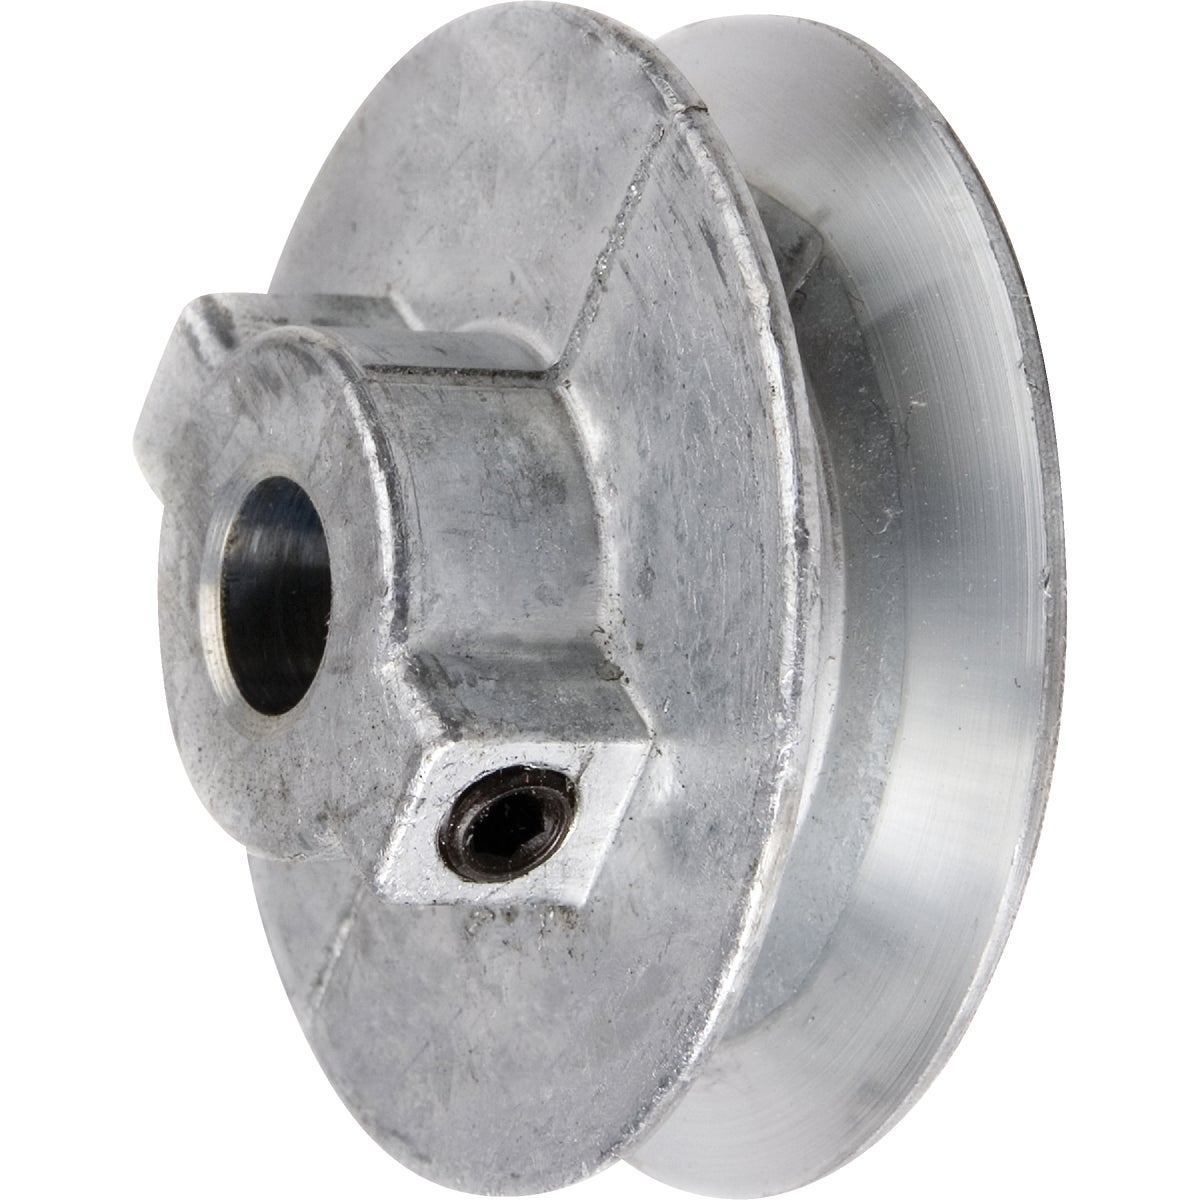 3-1/2X1/2 PULLEY - 350A5 by Chicago Die Casting